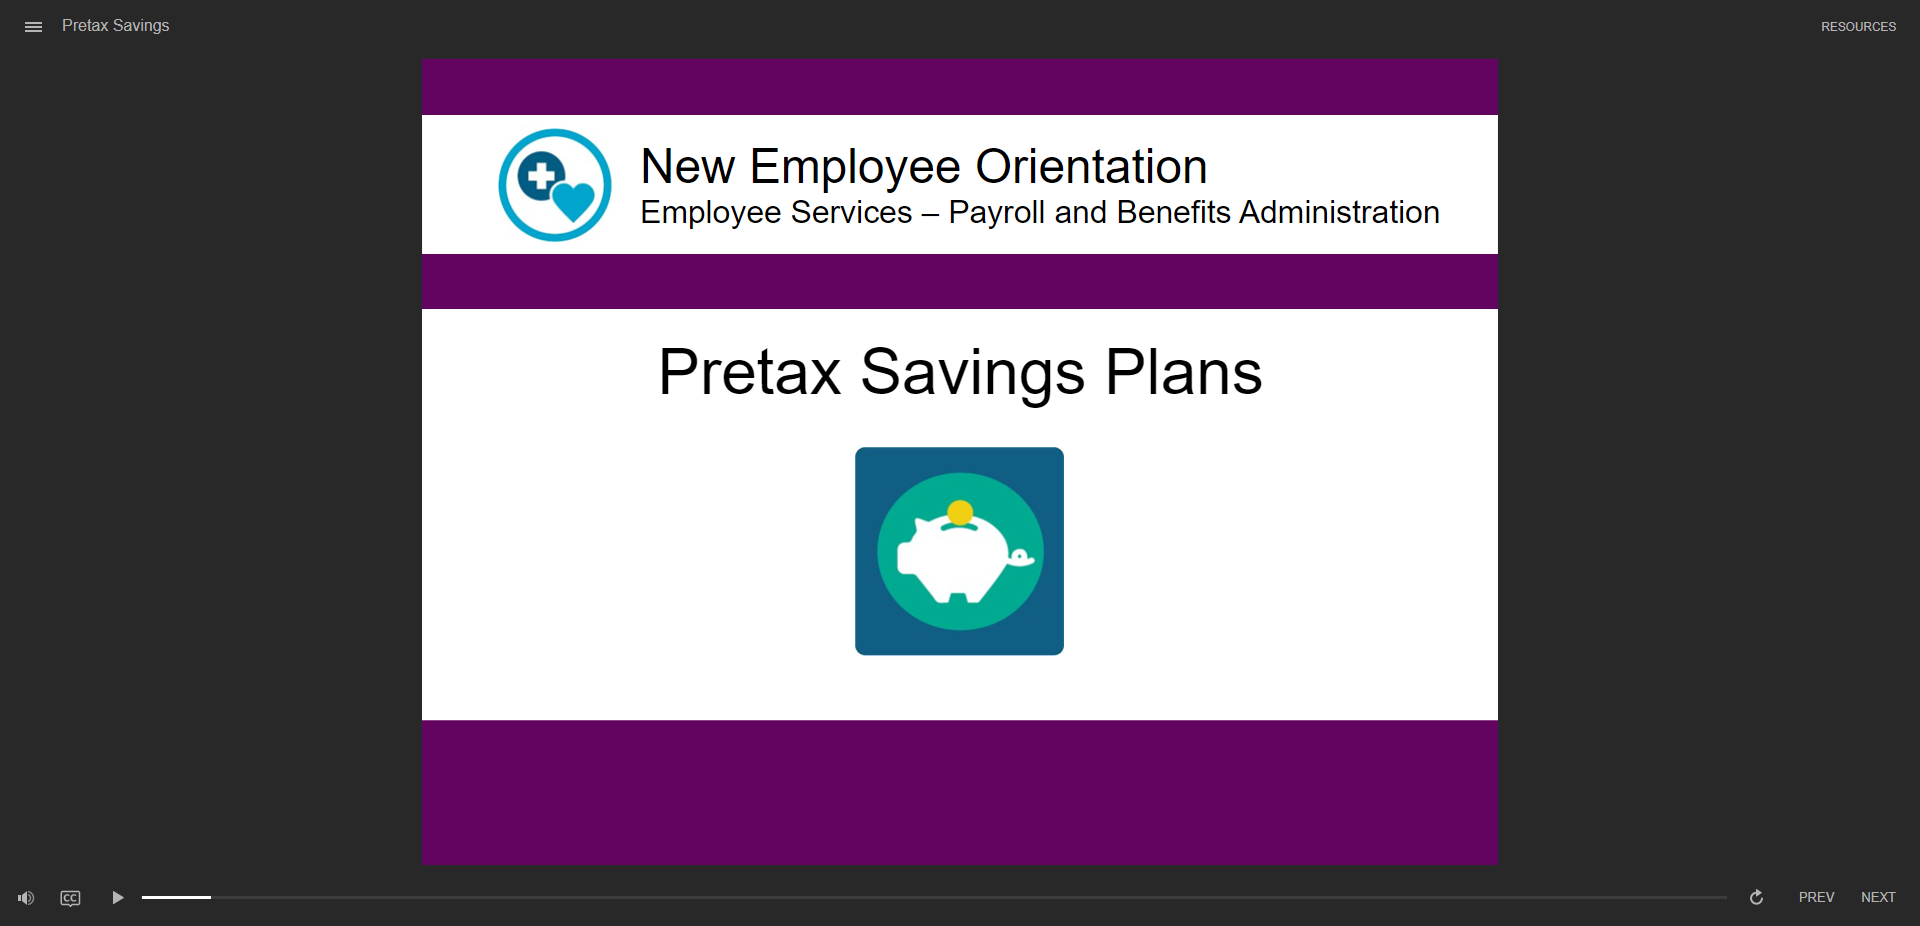 Pretax Savings Plans course - click to watch course